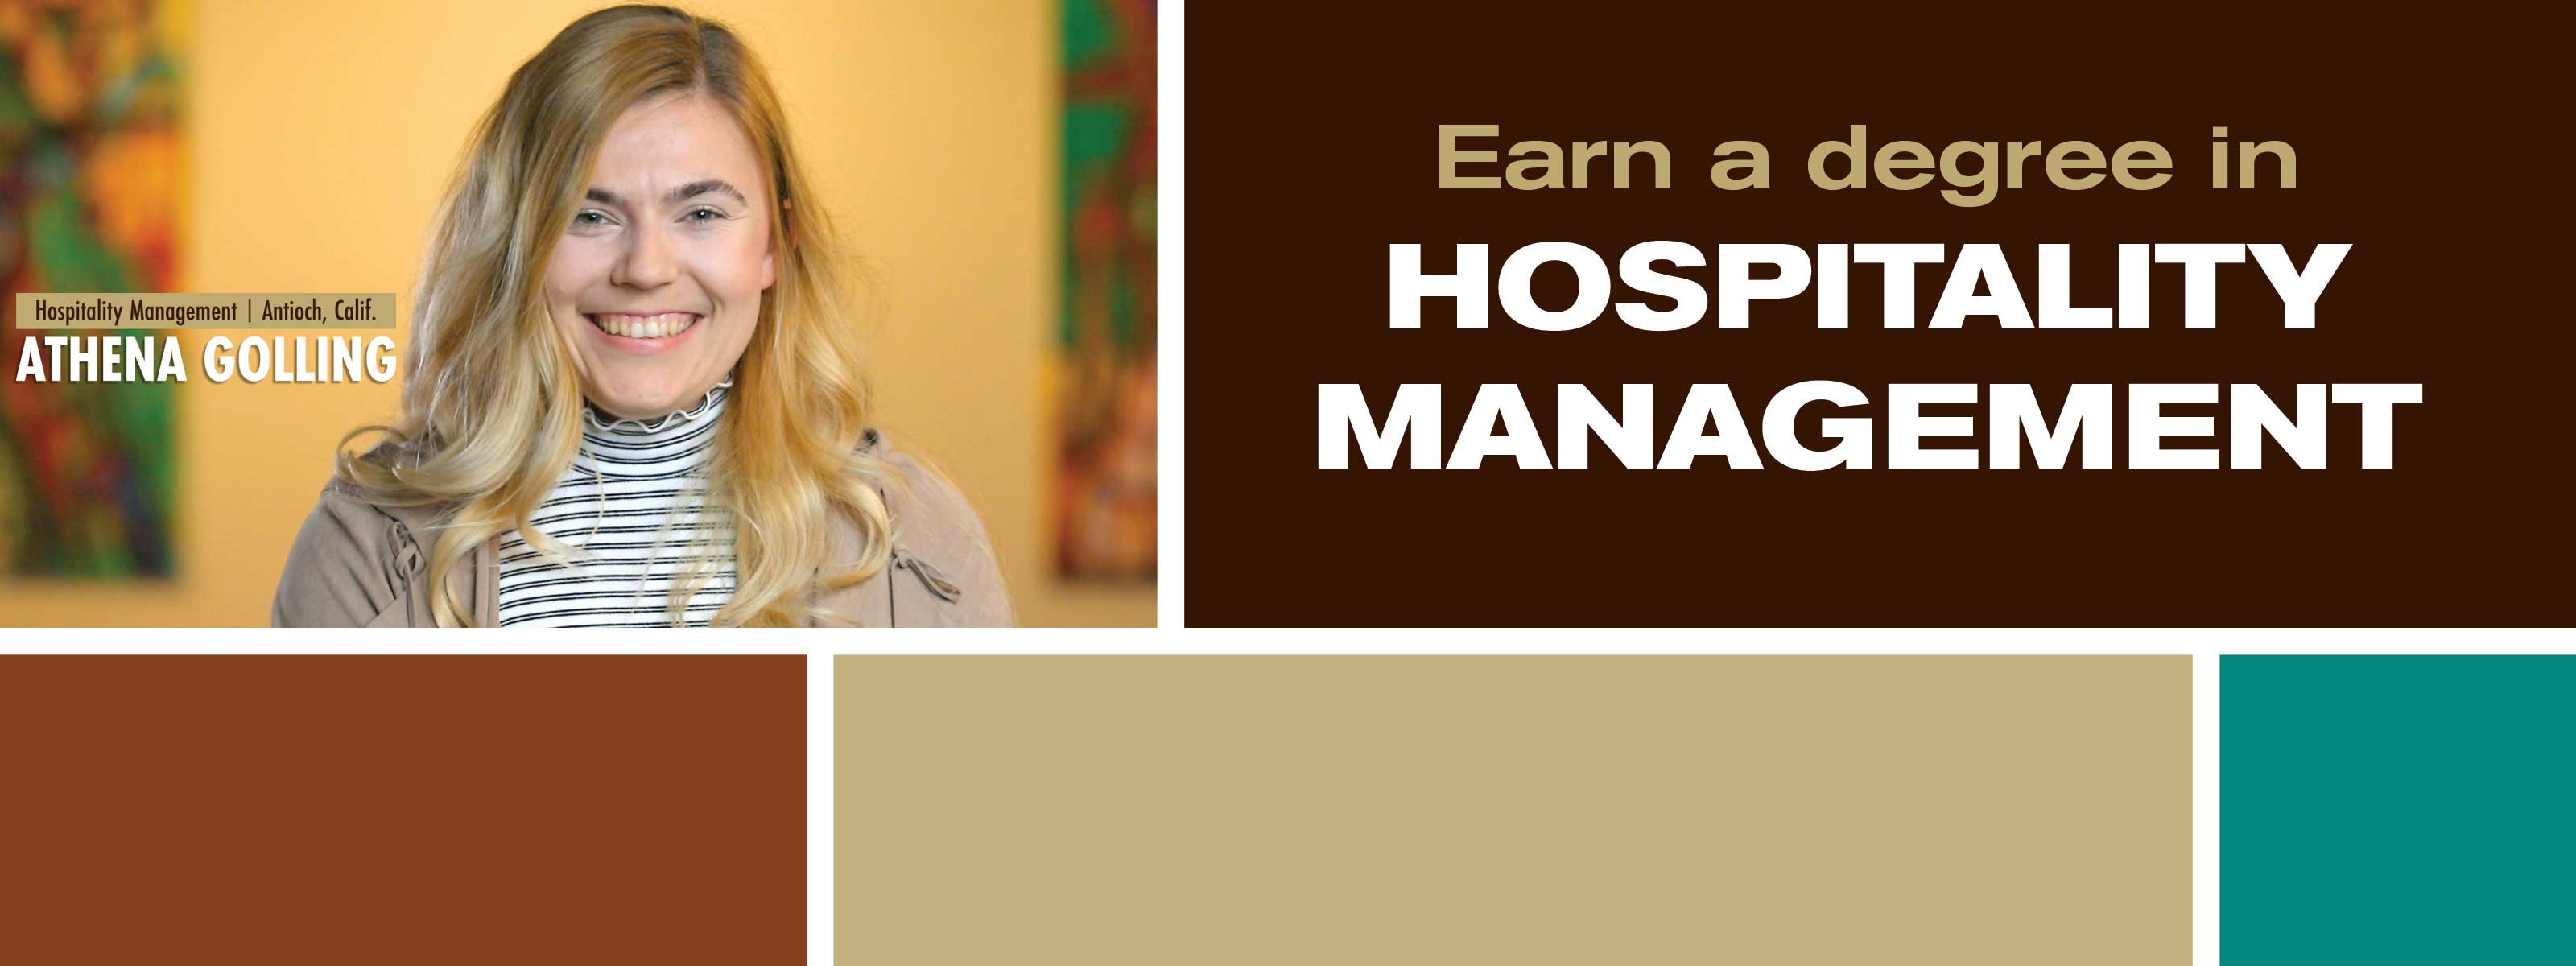 Earn A Degree In Hospitality Management - Discover. Engage. Lead.